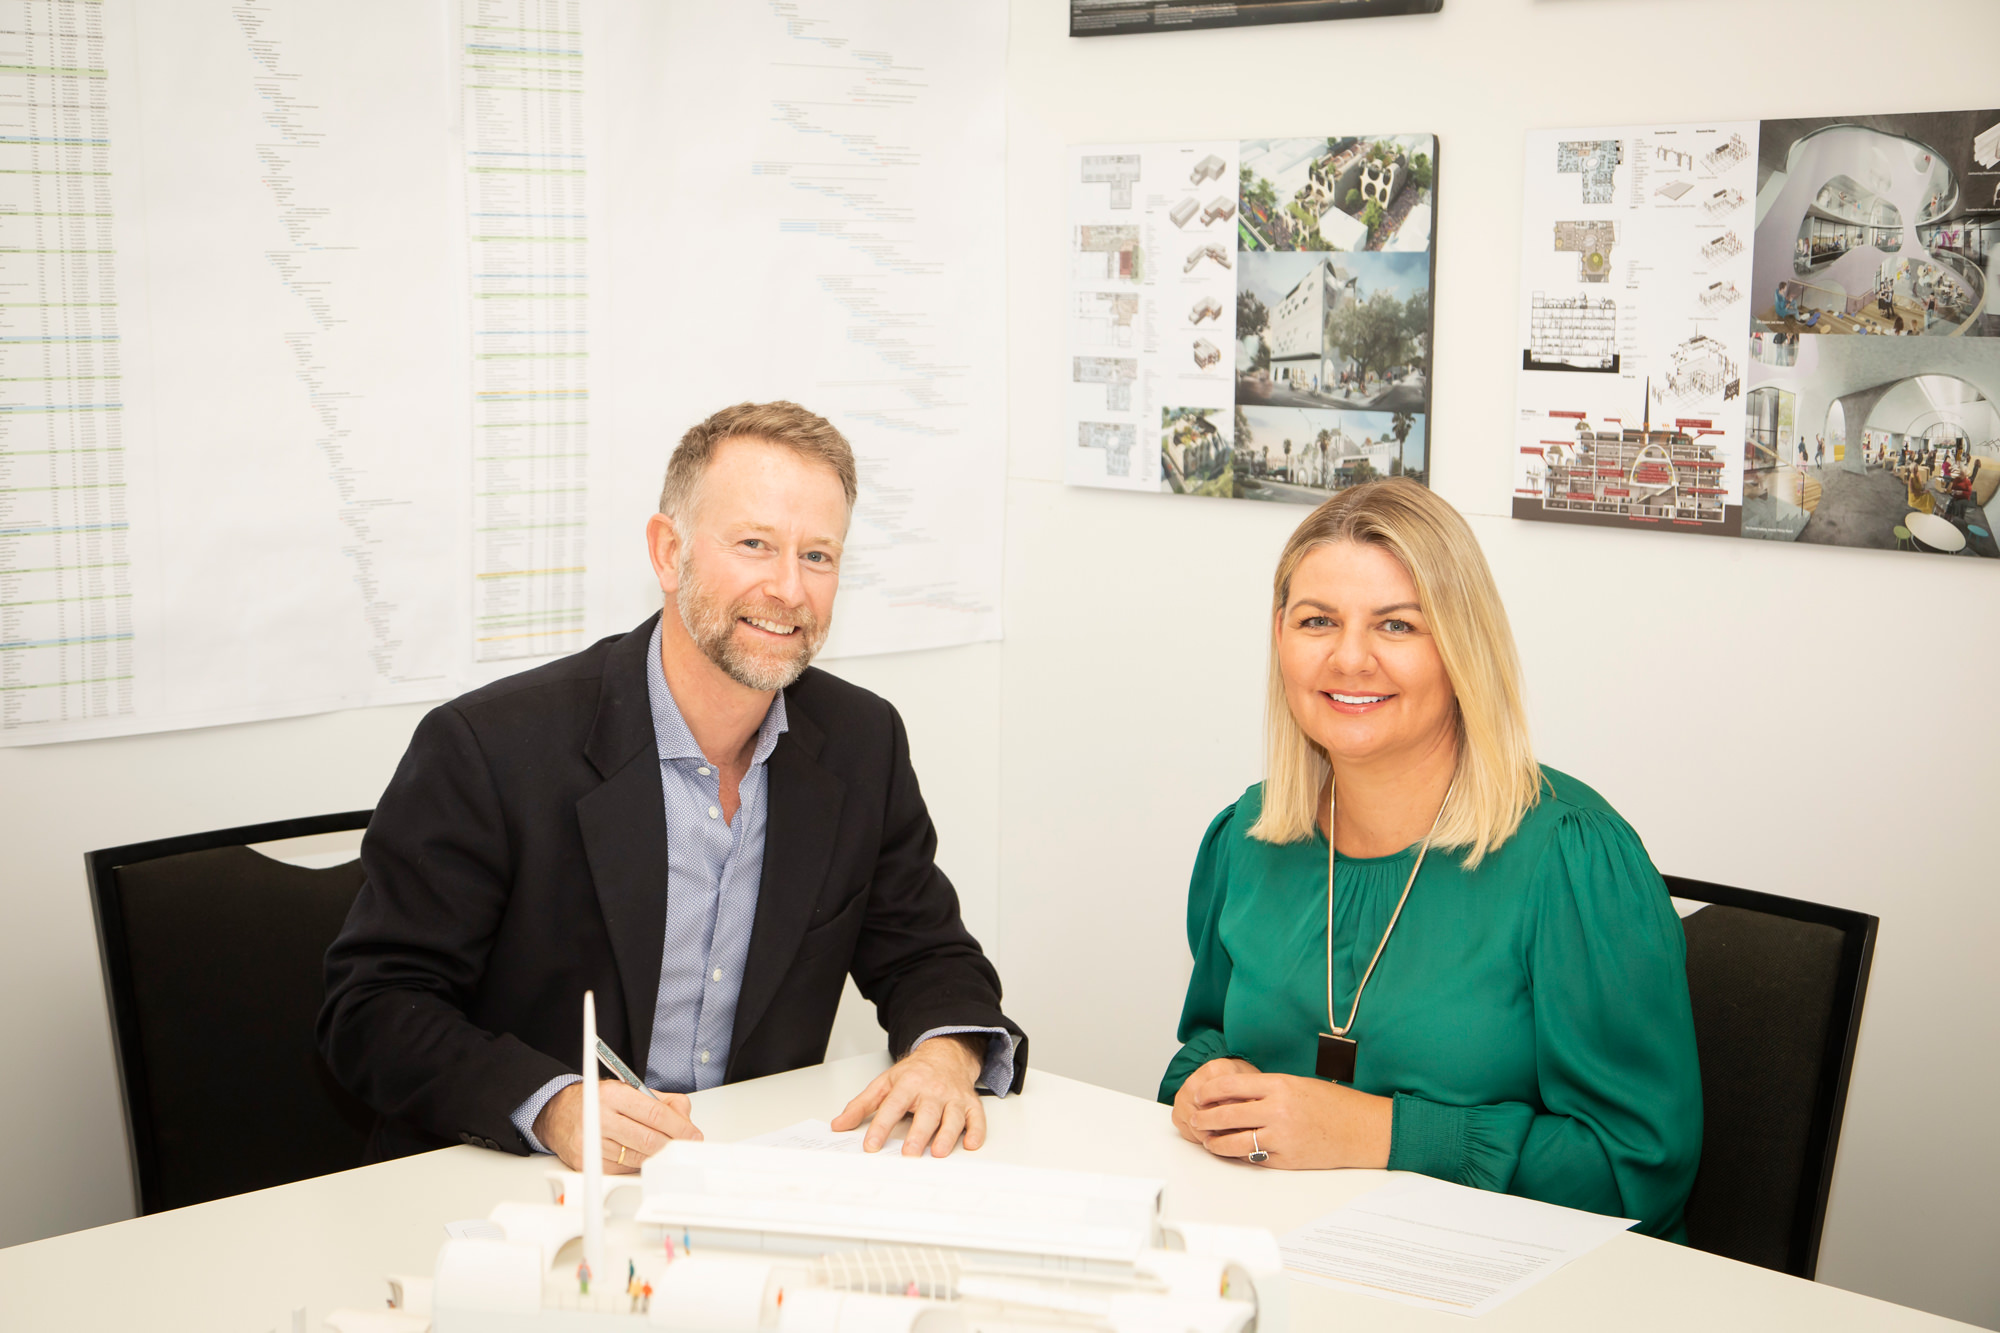 VPC Acting Chair Stuart Kollmorgen and Lifeview CEO Madeline Gall, sign partnership agreement on the site of the Victorian Pride Centre, due to open late 2020